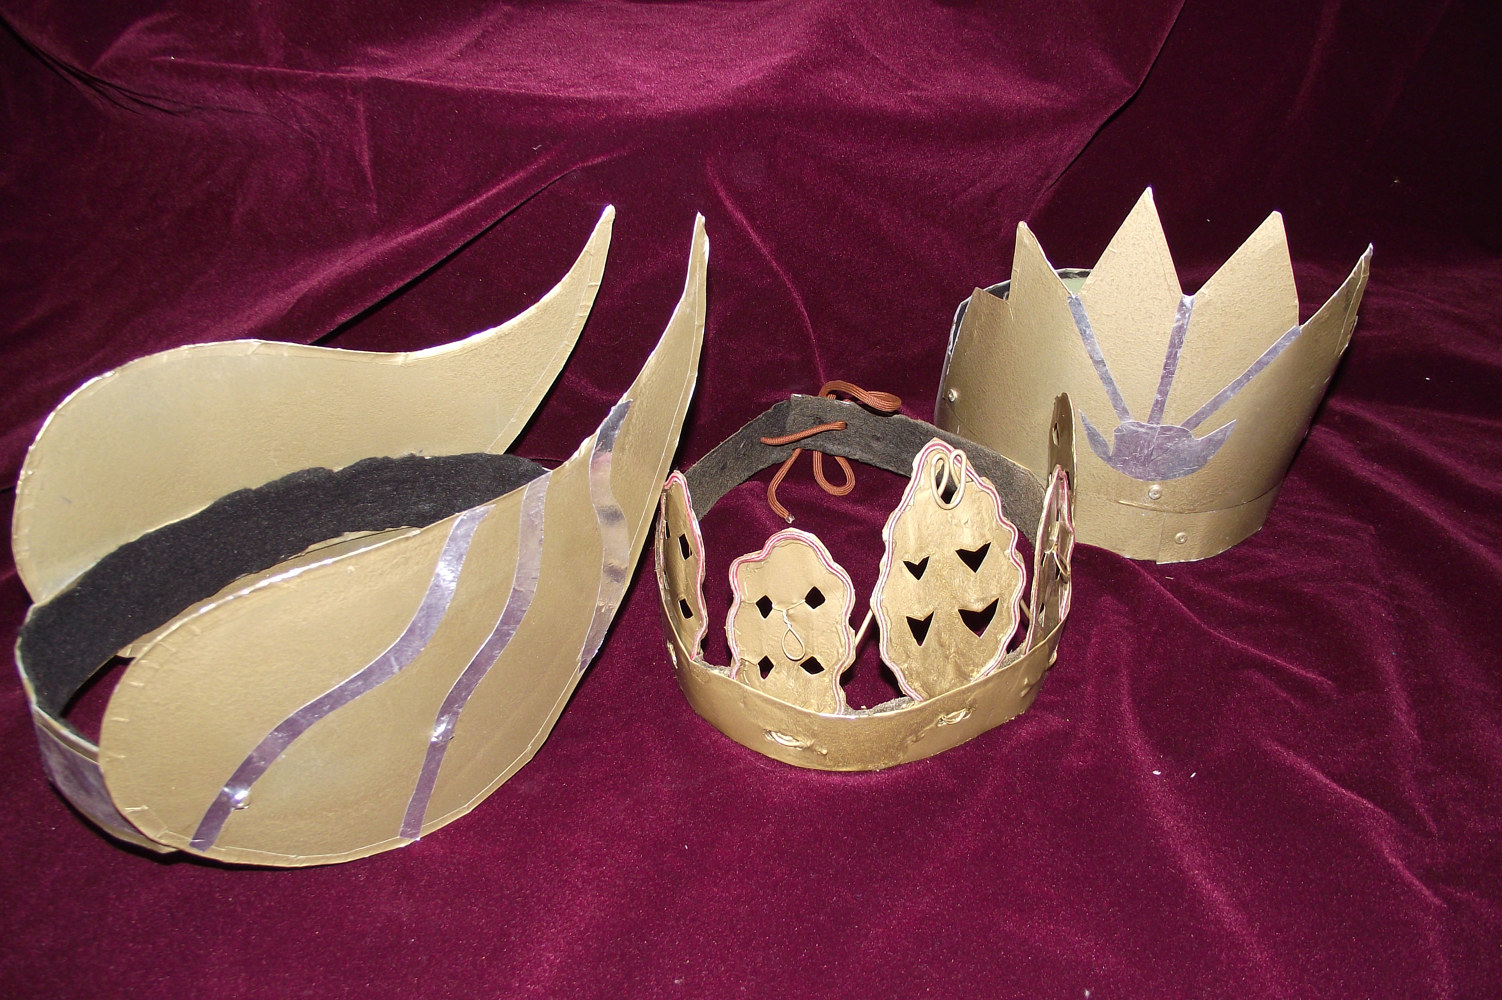 Crowns created from sheet metal by Kathryn Cover